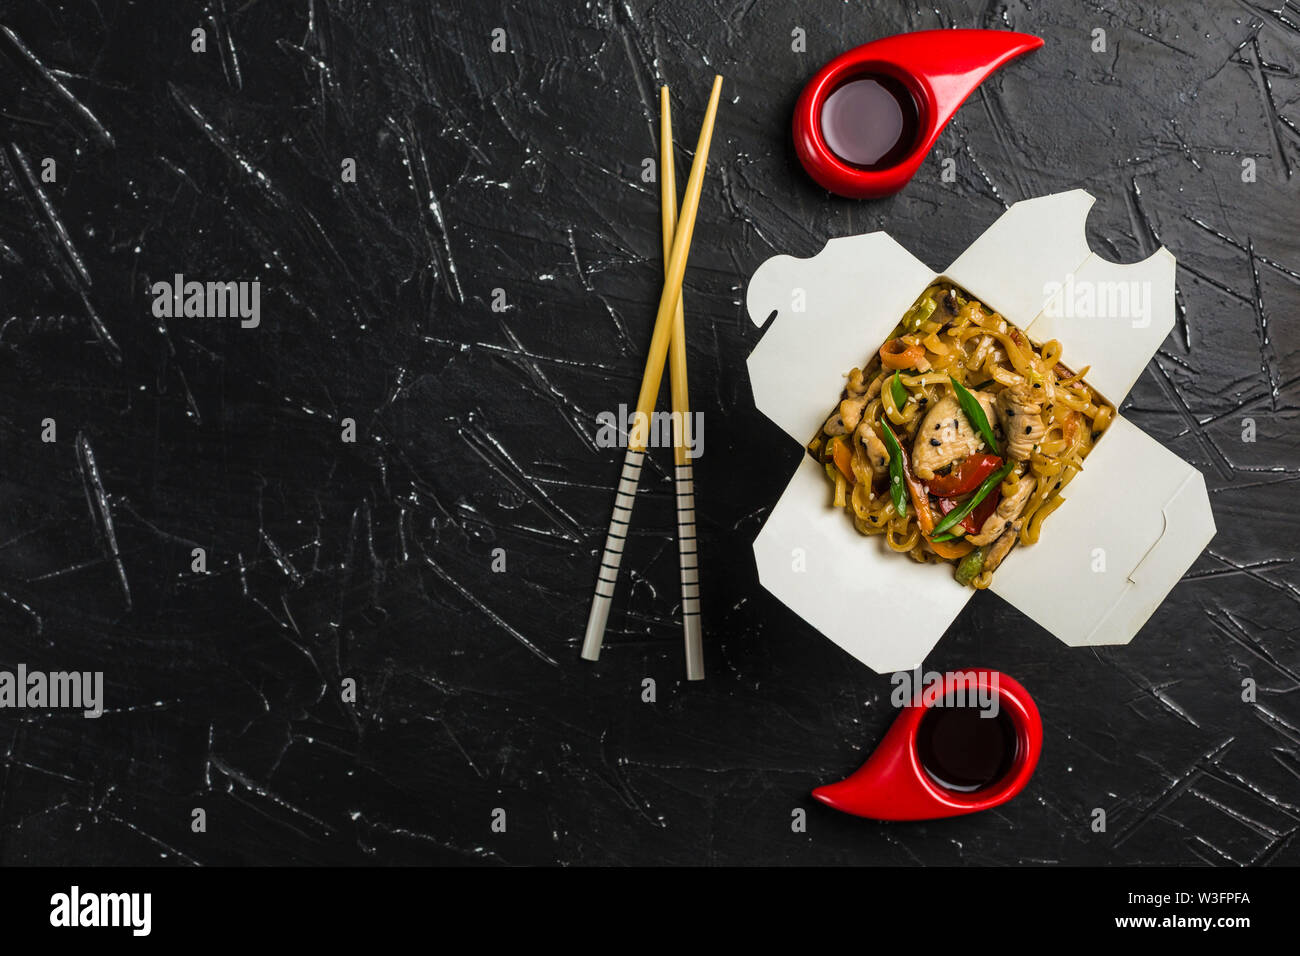 Chinese noodles in a box with chicken and vegetables with sticks. Wok food delivery from restaurant on dark background from top view. - Stock Image